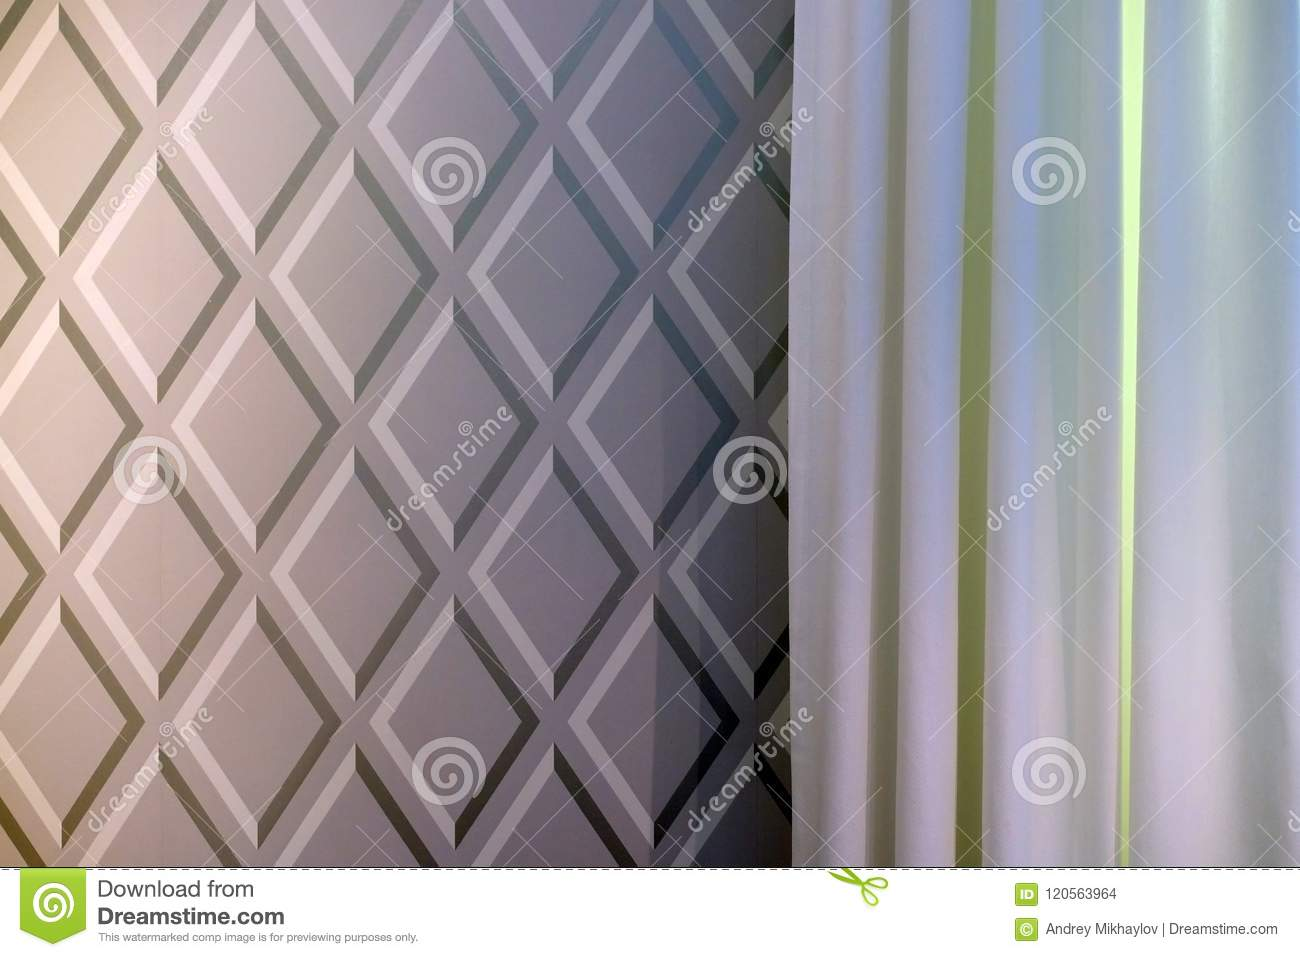 Fabric curtains dark and light colors.